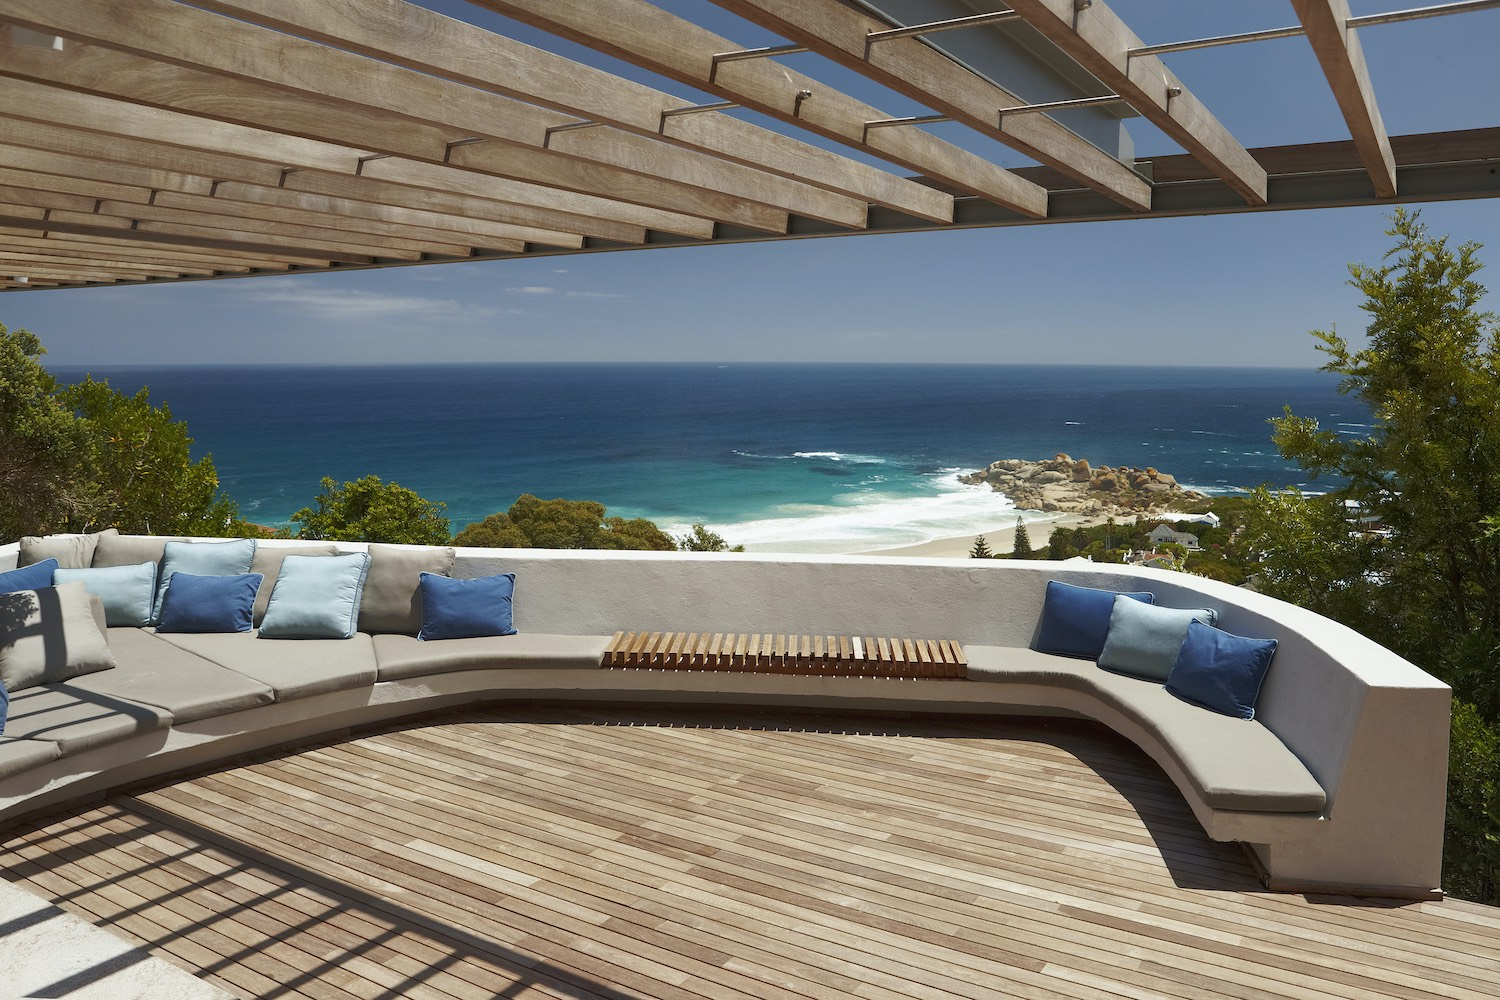 wooden deck terrace with sea and beach view